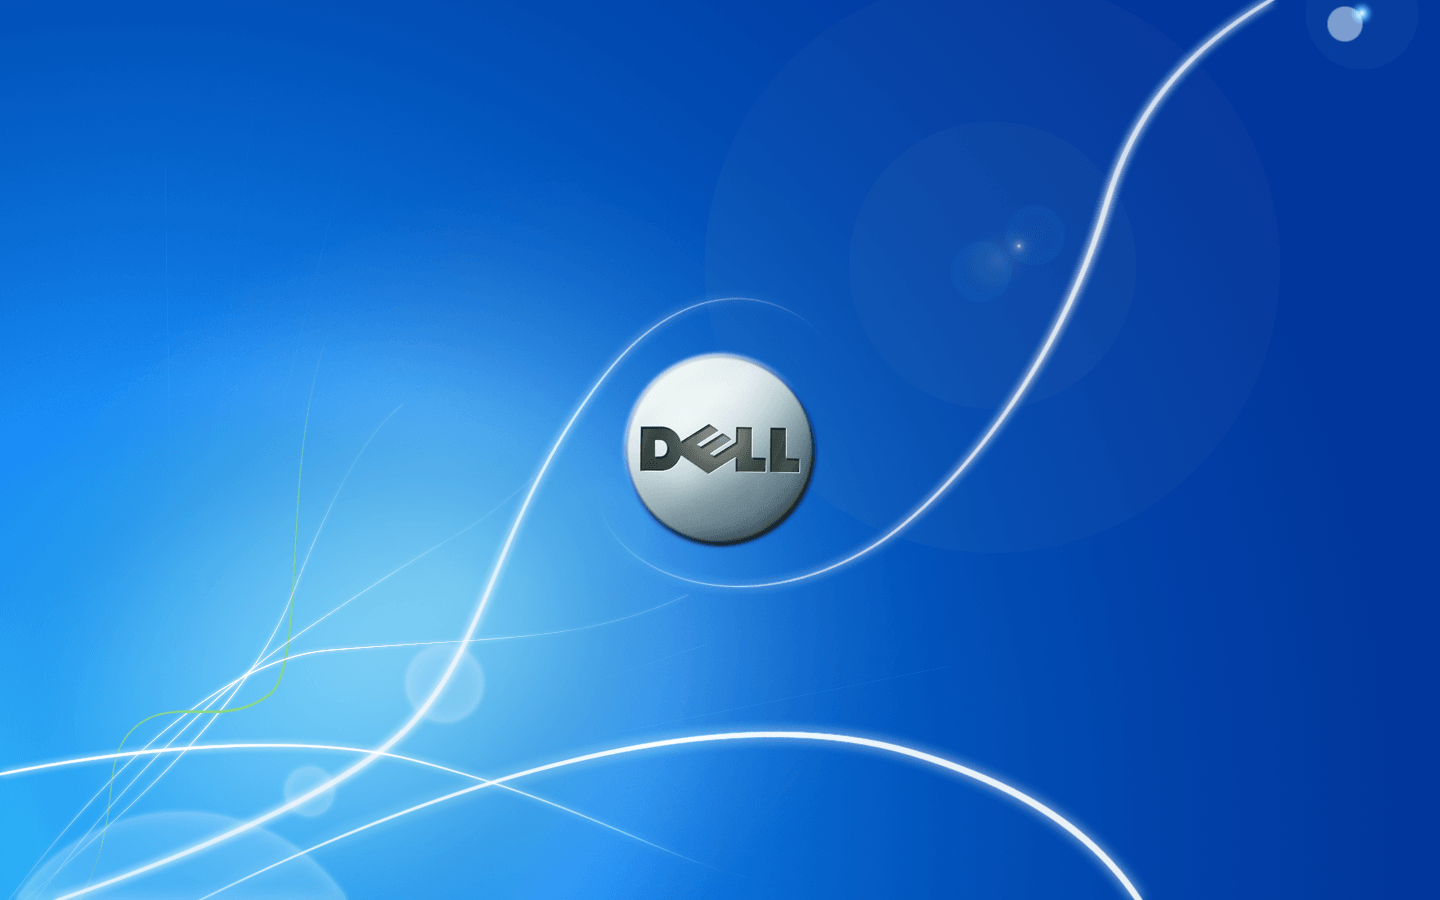 Dell PC Wallpapers   Top Dell PC Backgrounds   WallpaperAccess 1440x900